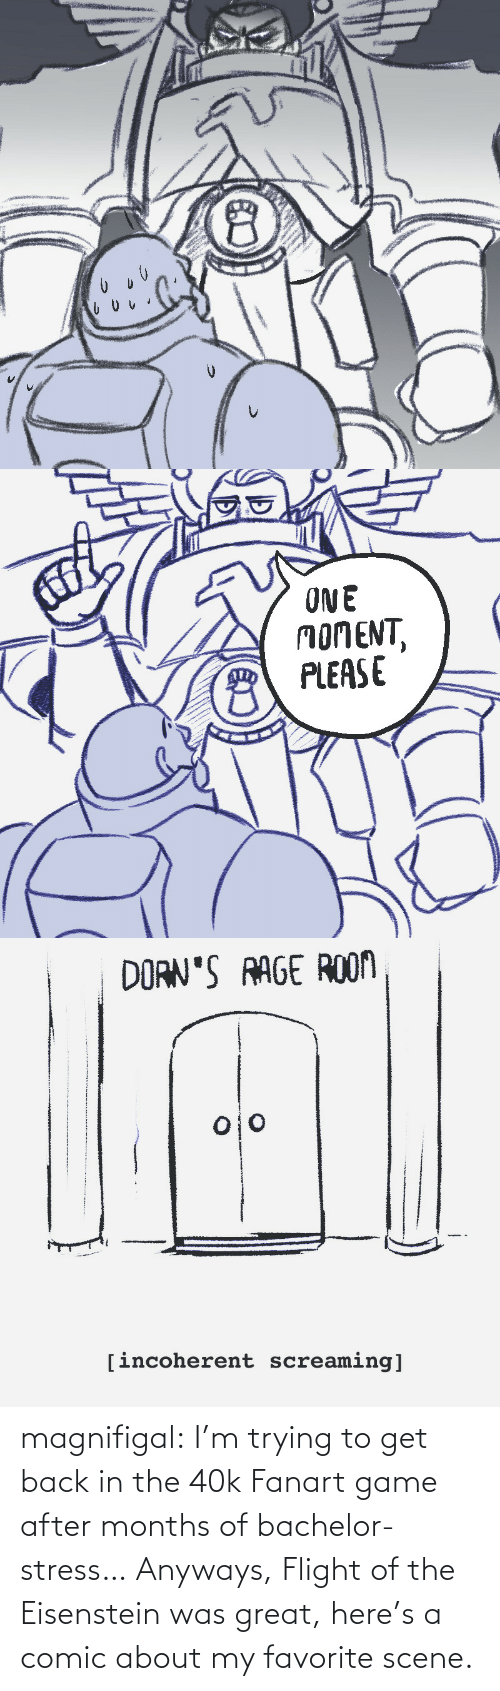 Flight: magnifigal:  I'm trying to get back in the 40k Fanart game after months of bachelor-stress… Anyways, Flight of the Eisenstein was great, here's a comic about my favorite scene.